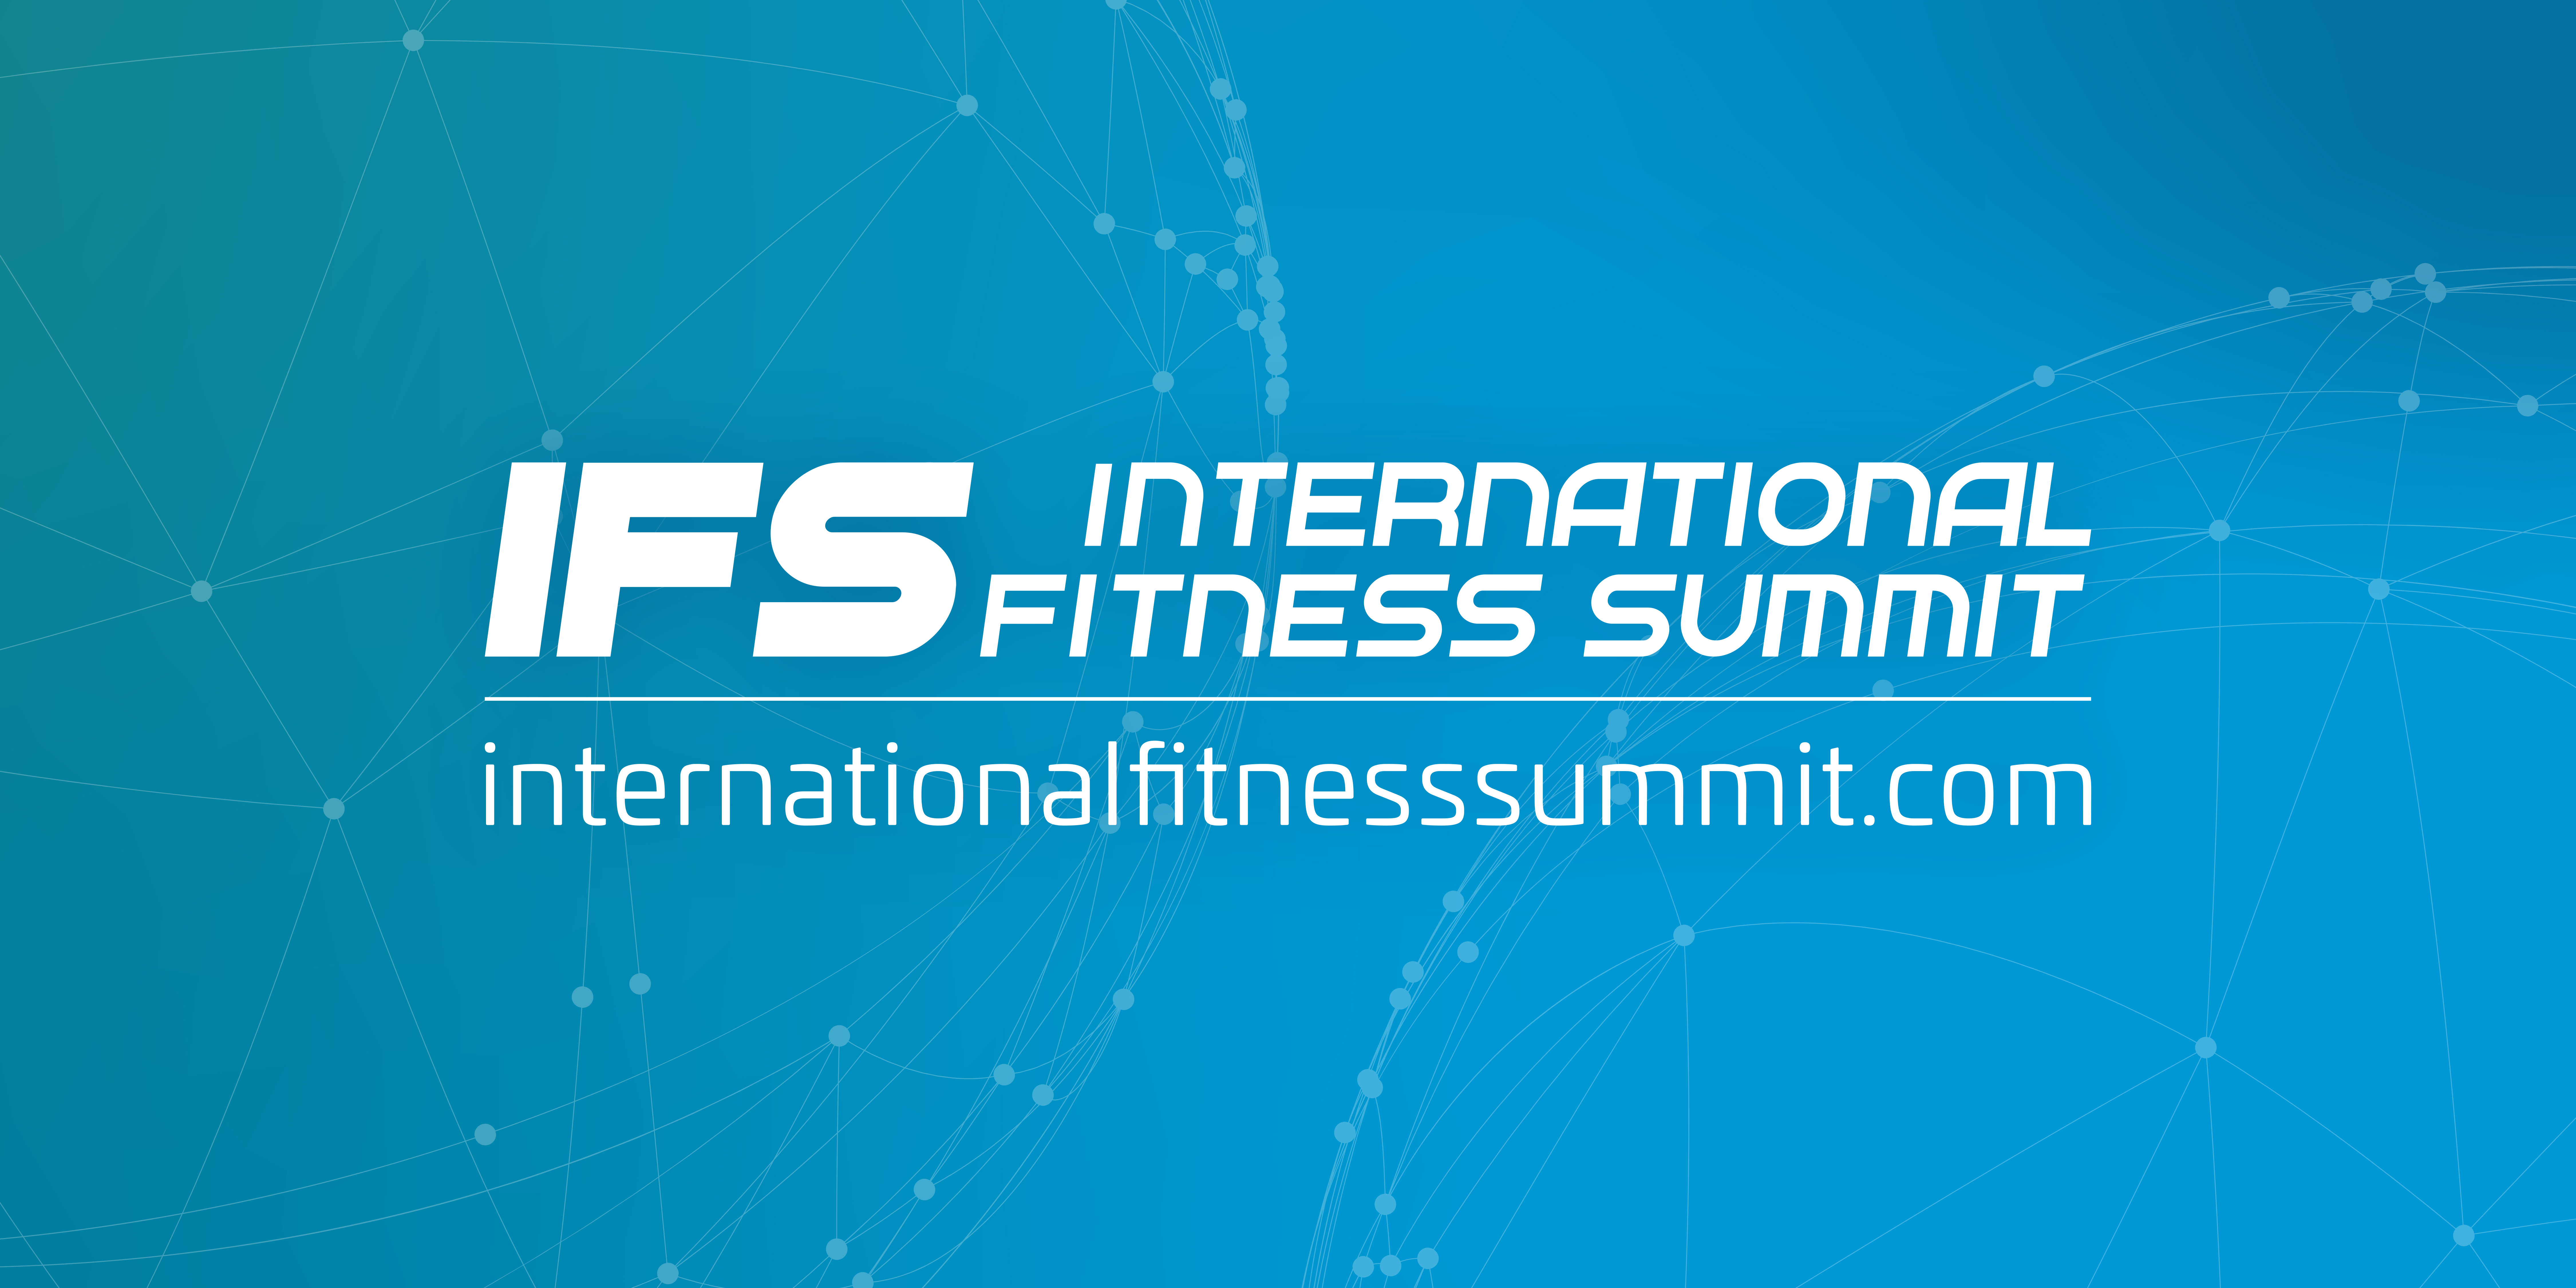 International Fitness Summit